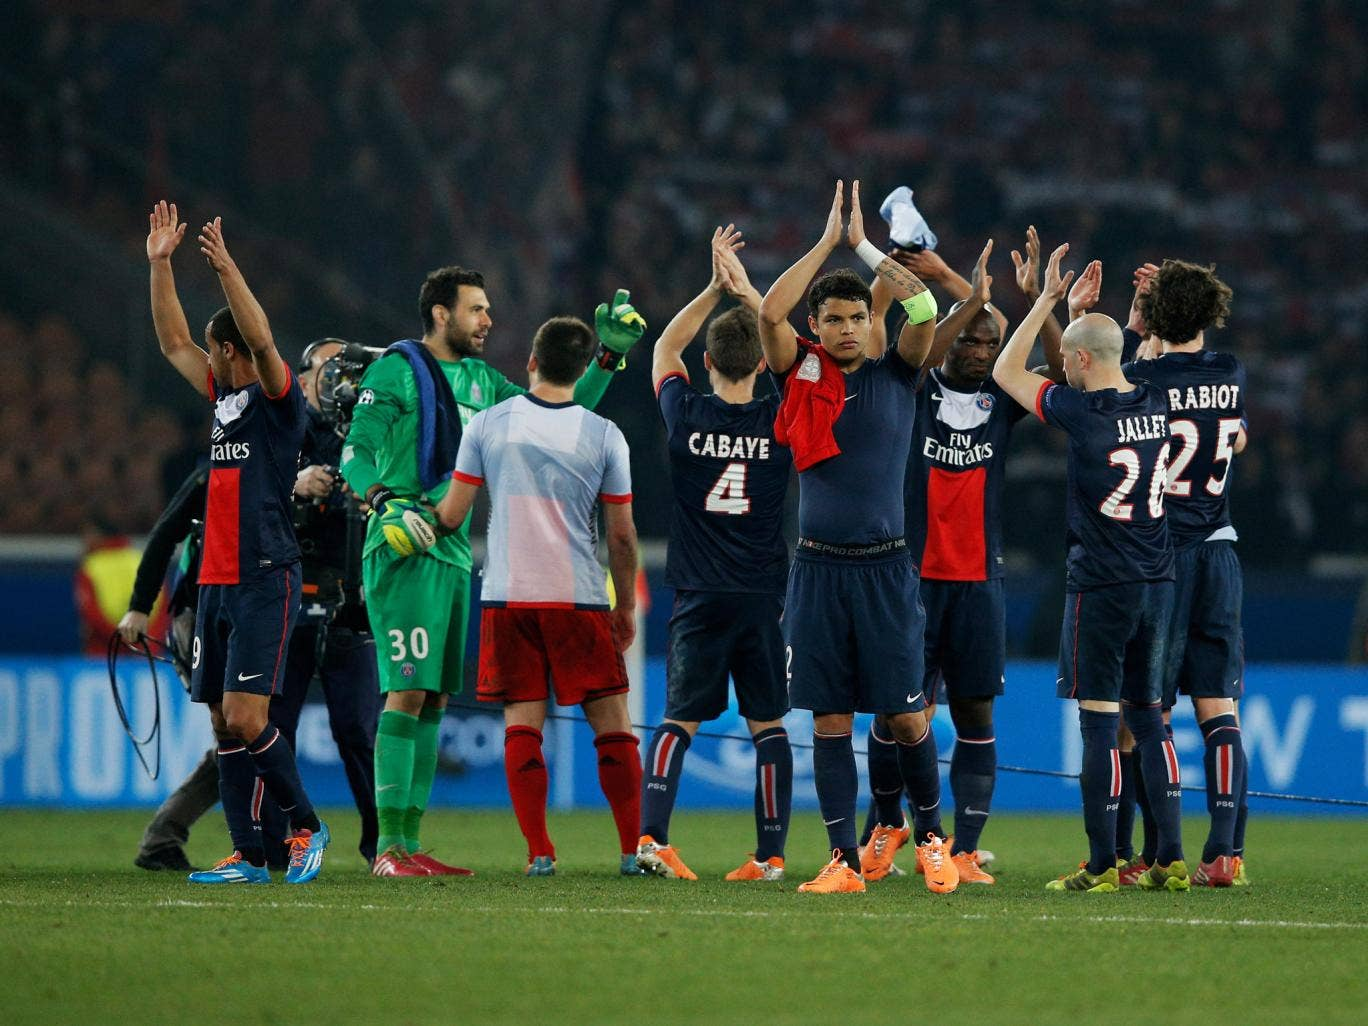 PSG players celebrate victory after the Champions League Round of 16 second leg match against Bayer Leverkusen at Parc des Princes